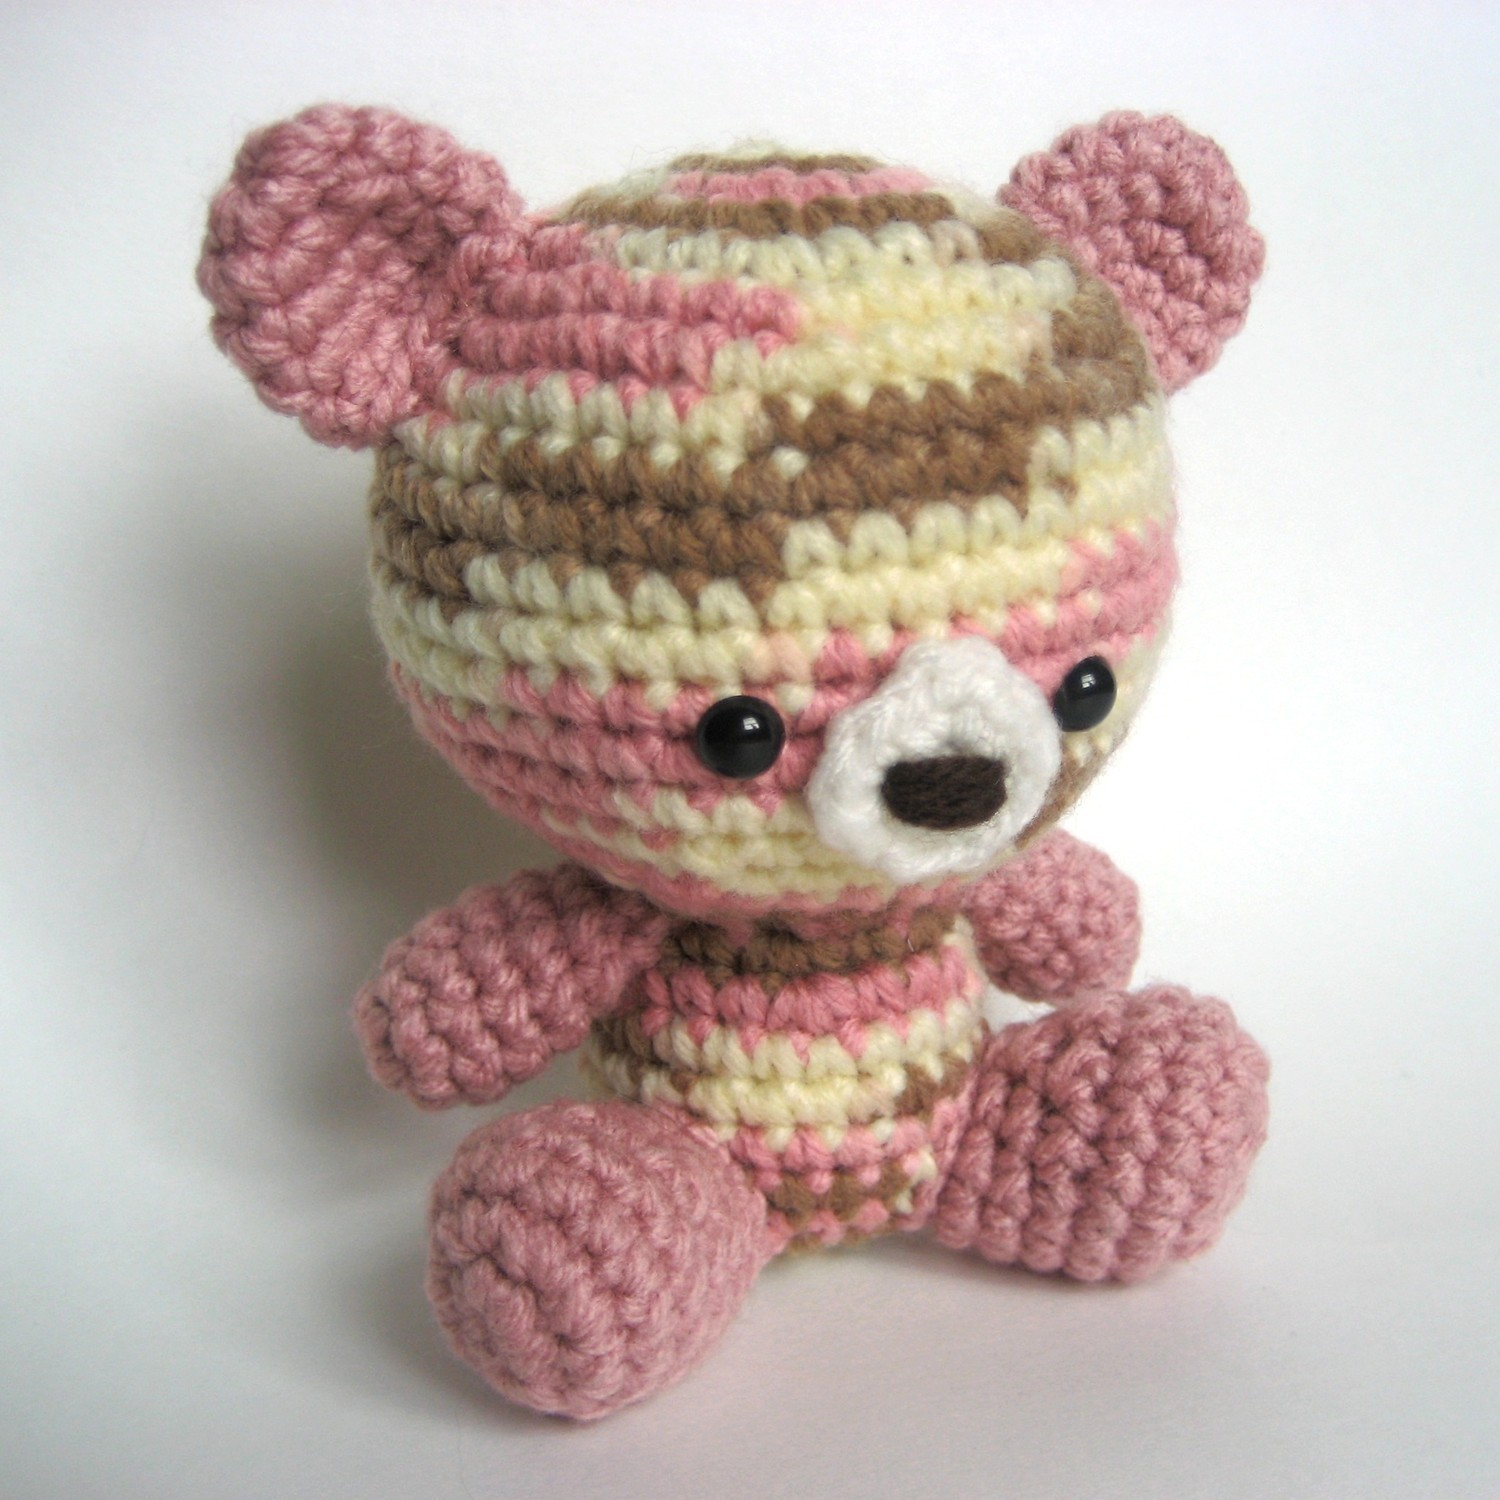 10 Teddy Bear Knitting Patterns - The Funky Stitch